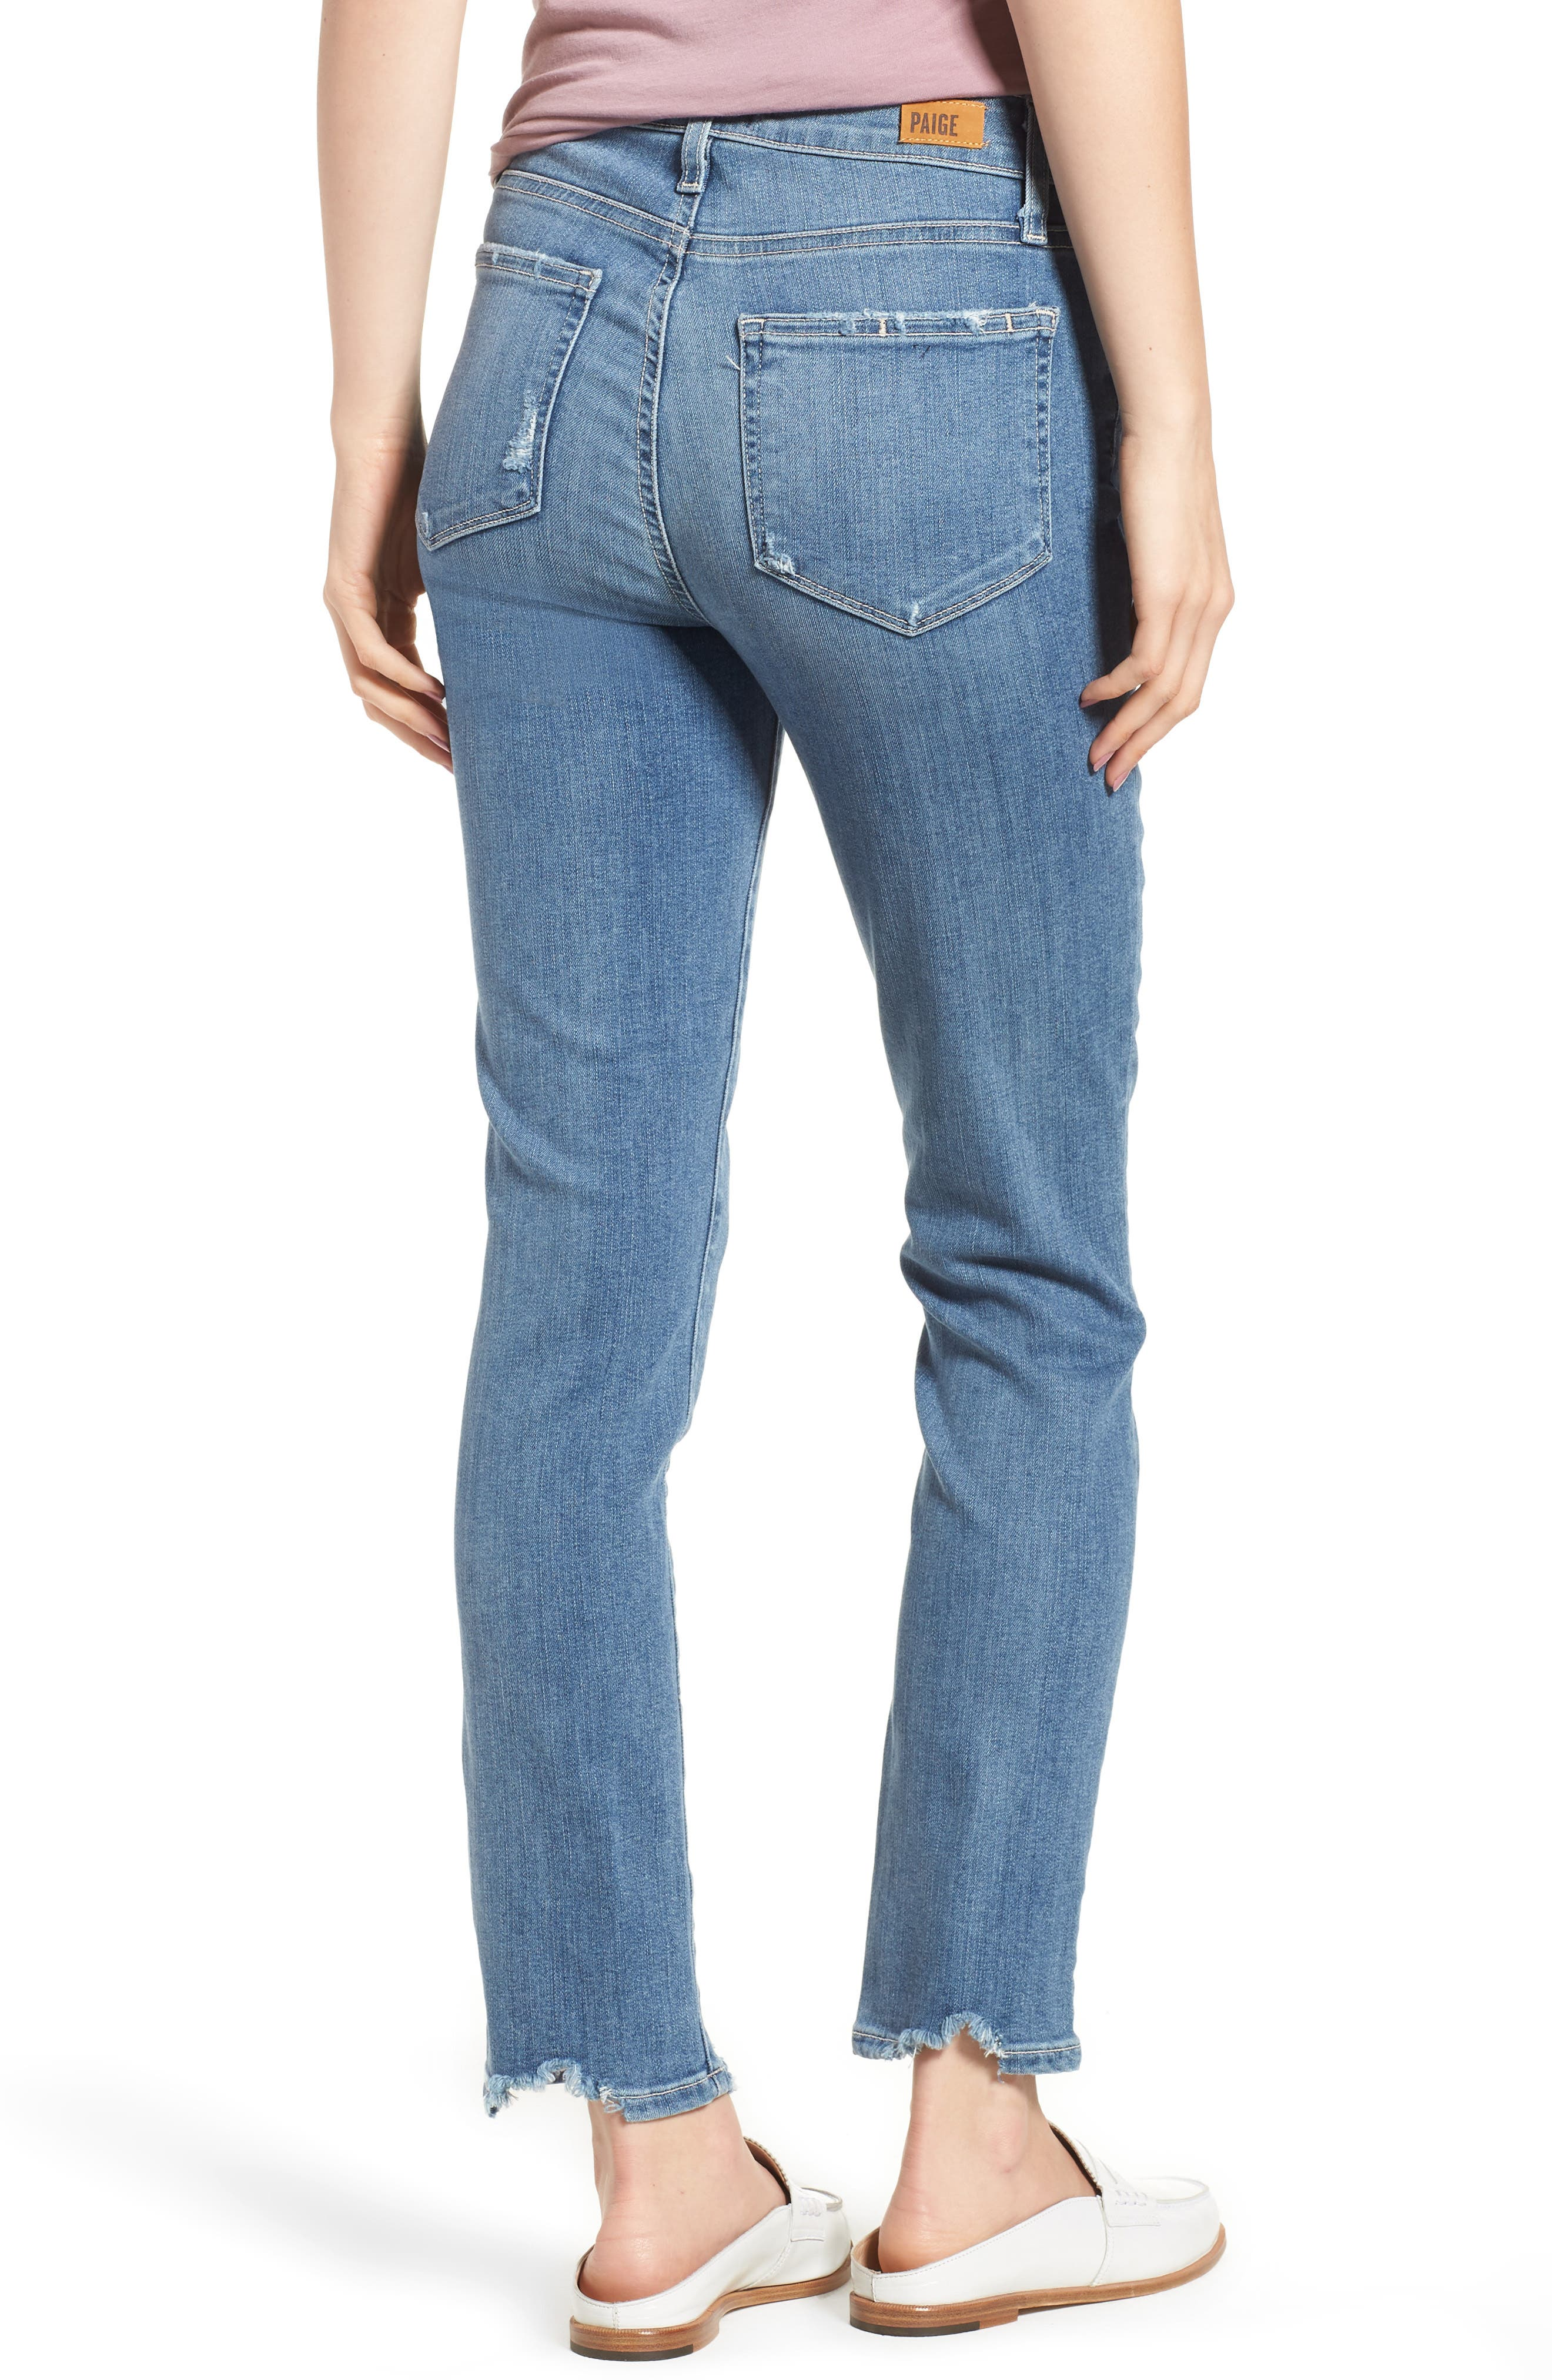 Transcend Vintage - Hoxton High Waist Ankle Skinny Jeans,                             Alternate thumbnail 4, color,                             Zahara